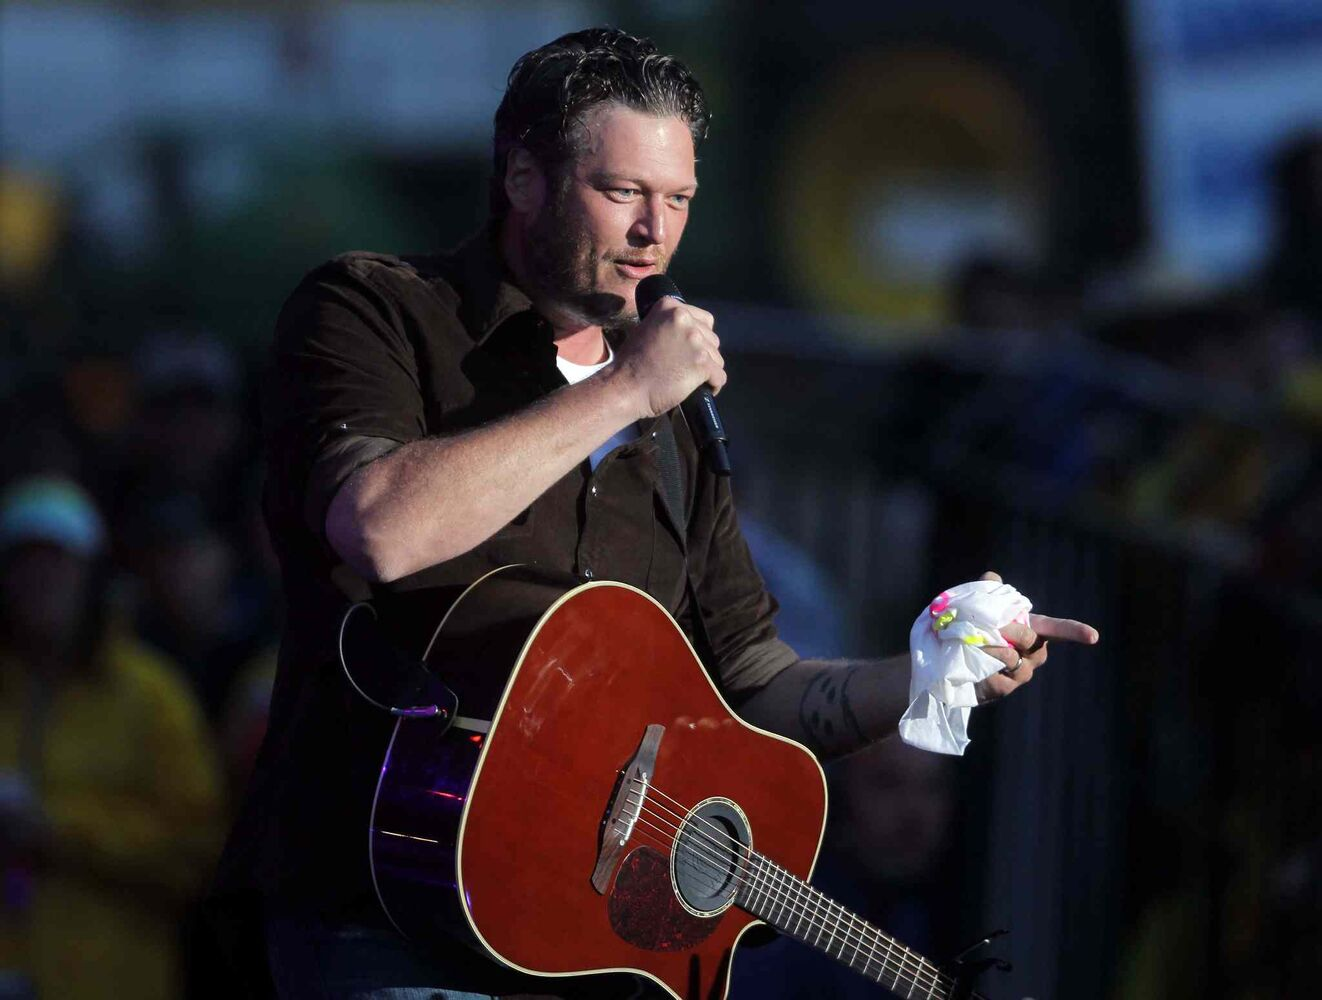 Blake Shelton headlines Saturday night at the festival.